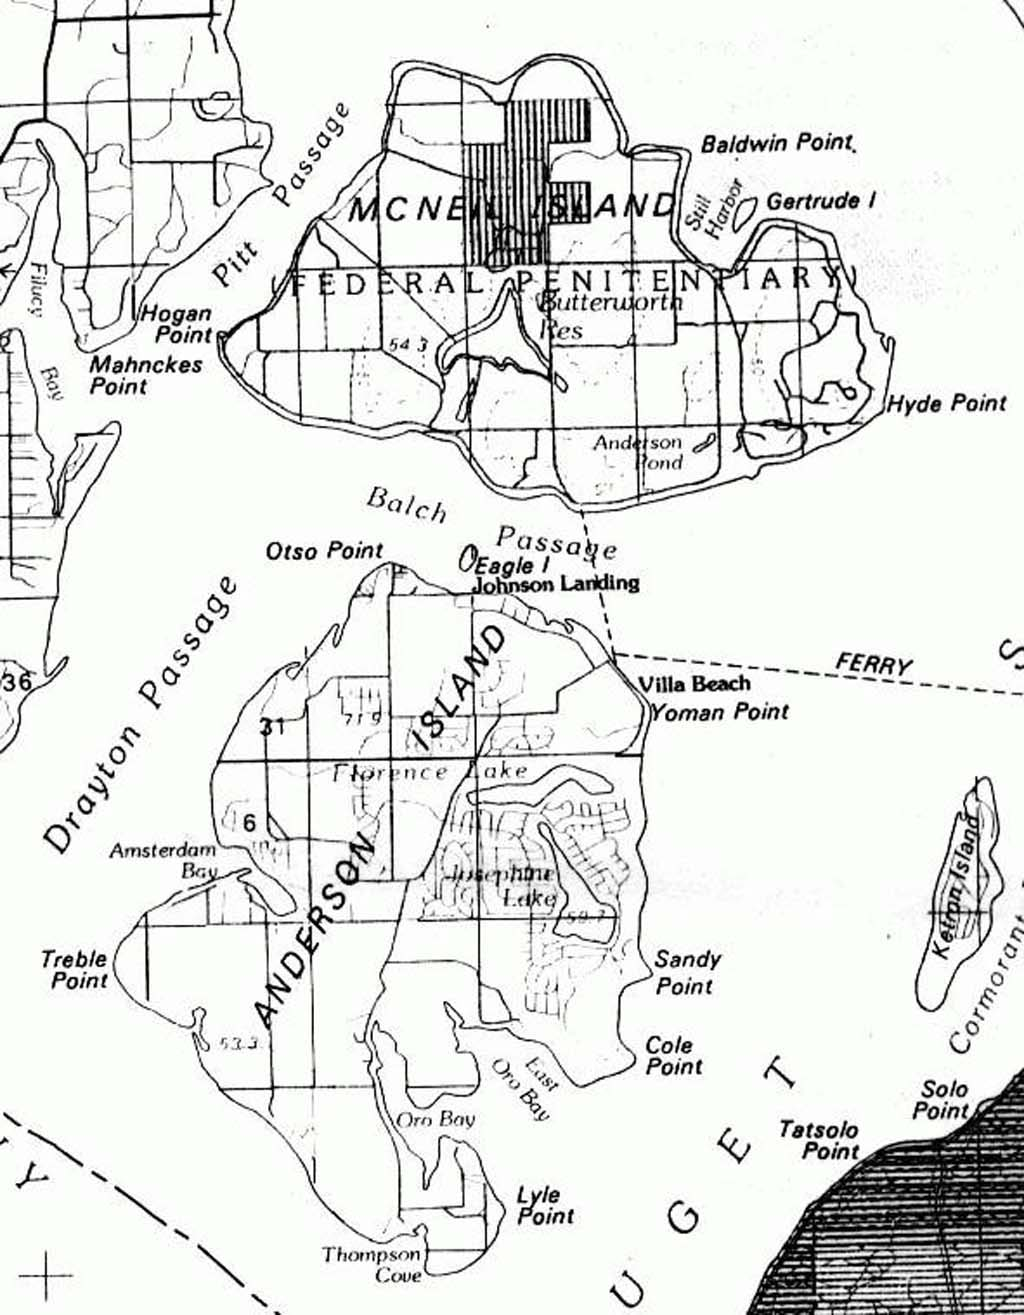 Mcneil Island Map McNeil Island and the Federal Penitentiary, 1841 1981